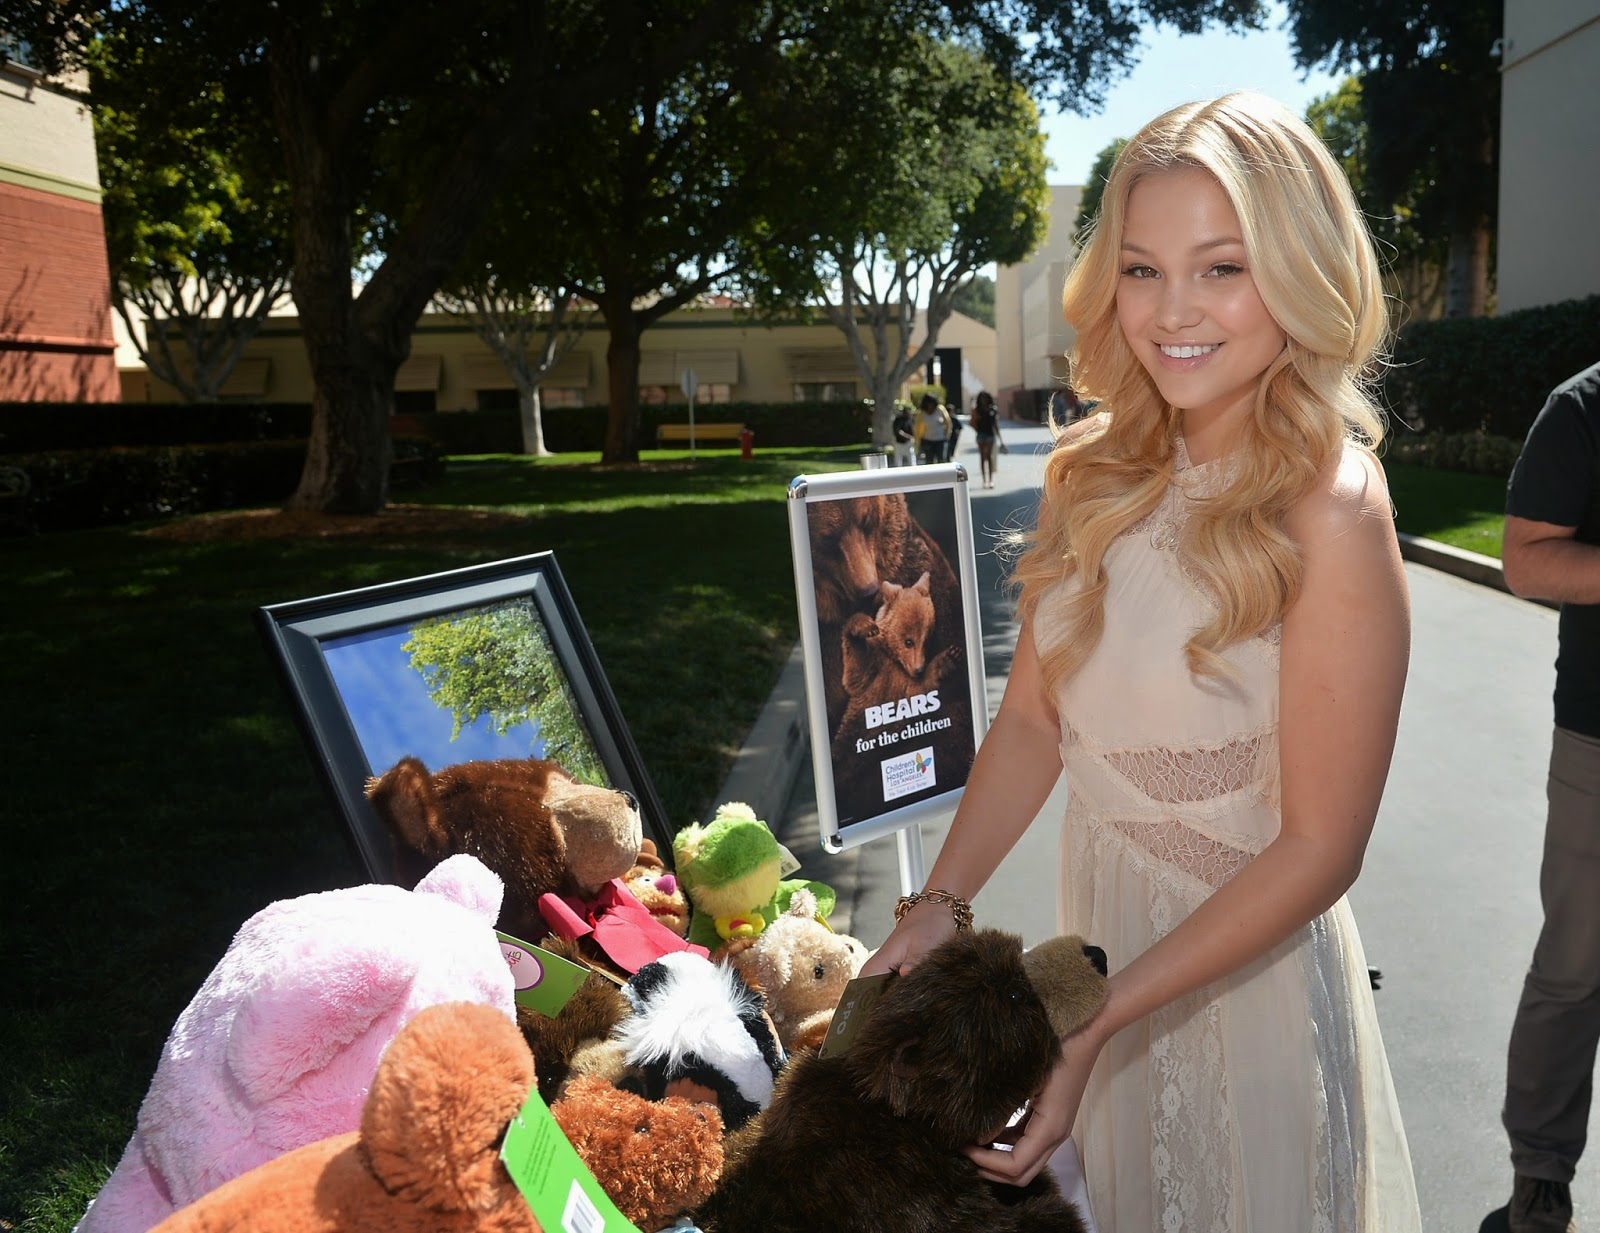 Guests were encouraged to bring a new plush bear to the screening to donate to Children's Hospital Los Angeles.